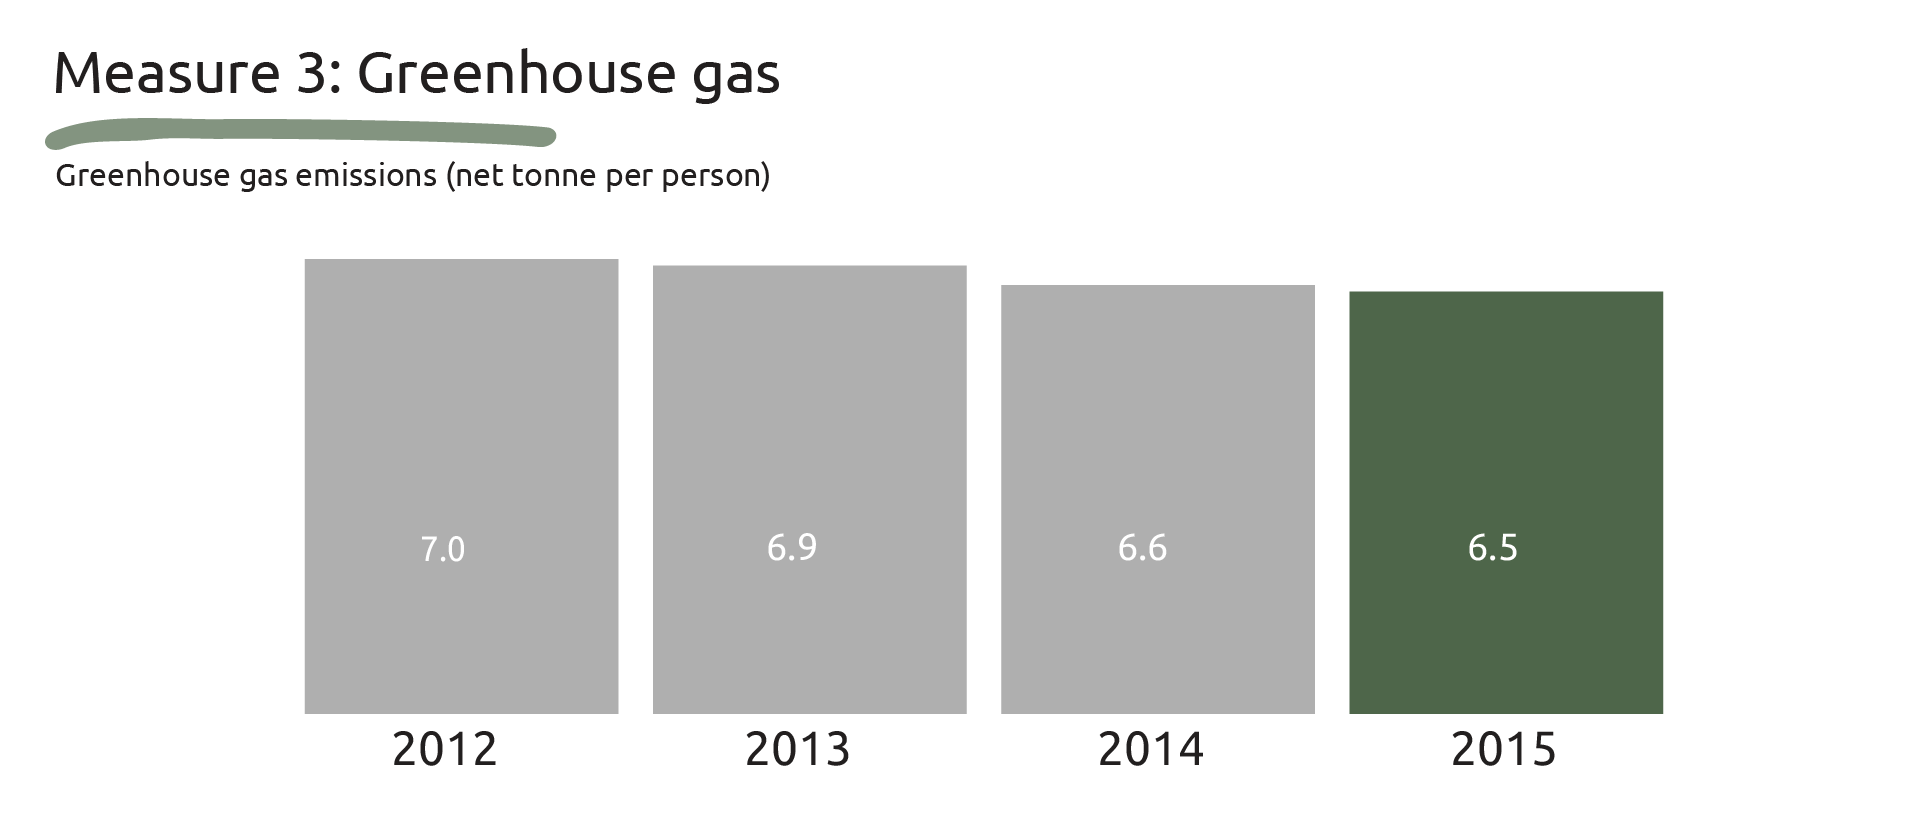 Graphic showing the greenhouse gas emissions of net tonne per person: 2012 - 7.0, 2013 - 6.9, 2014 - 6.6 and 2015 - 6.5.